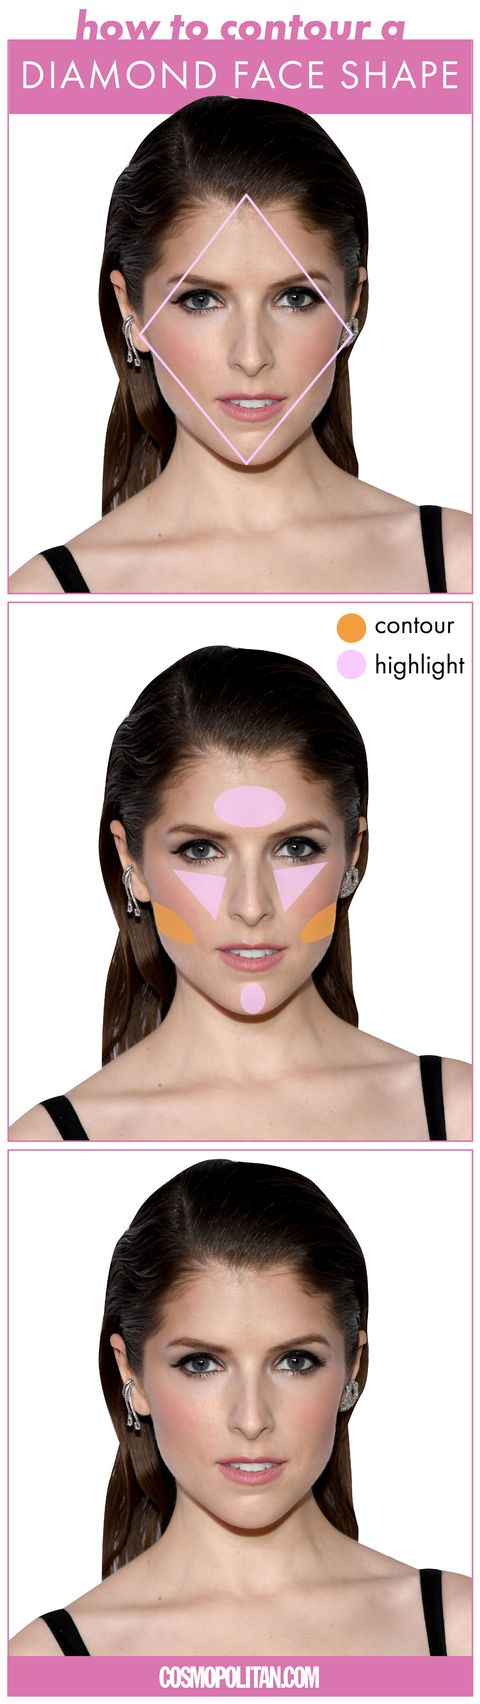 How To Contour For Your Face Shape Best Way Use Contouring Eyeshadow Application Diagram Image